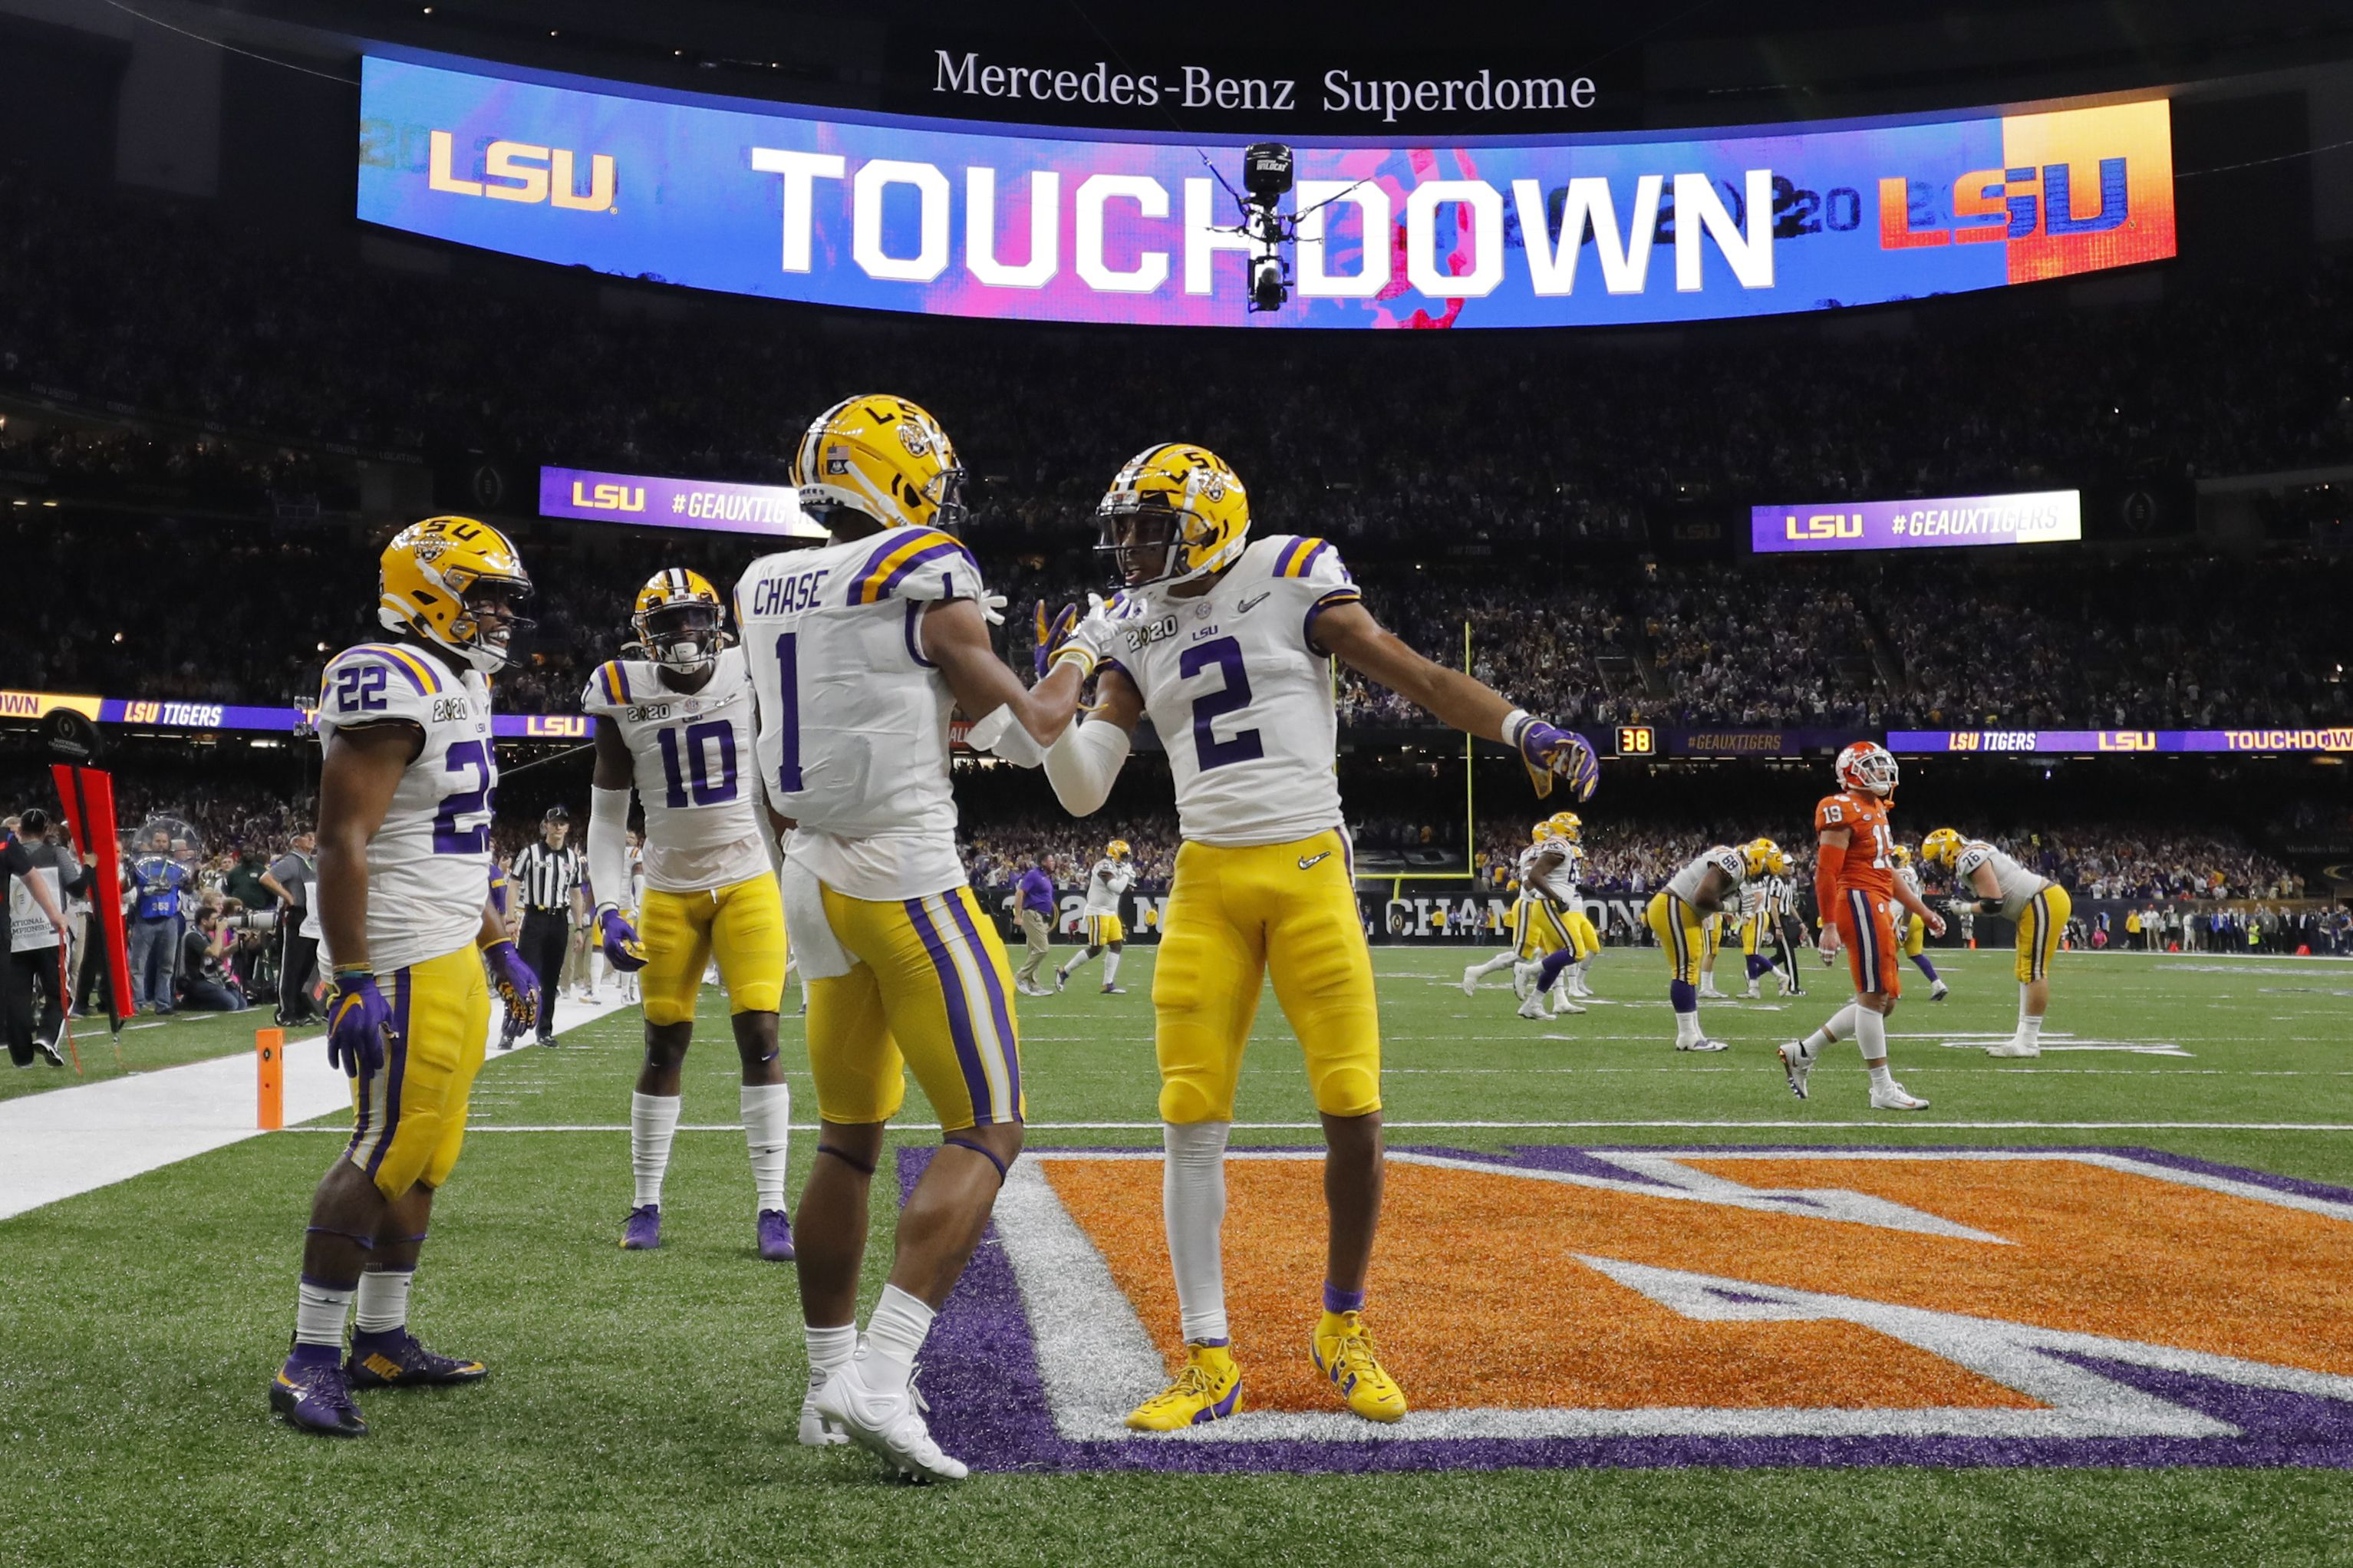 Lsu Tops Clemson 42 25 To Win College Football Playoff National Championship Game Recap Video Highlights Oregonlive Com